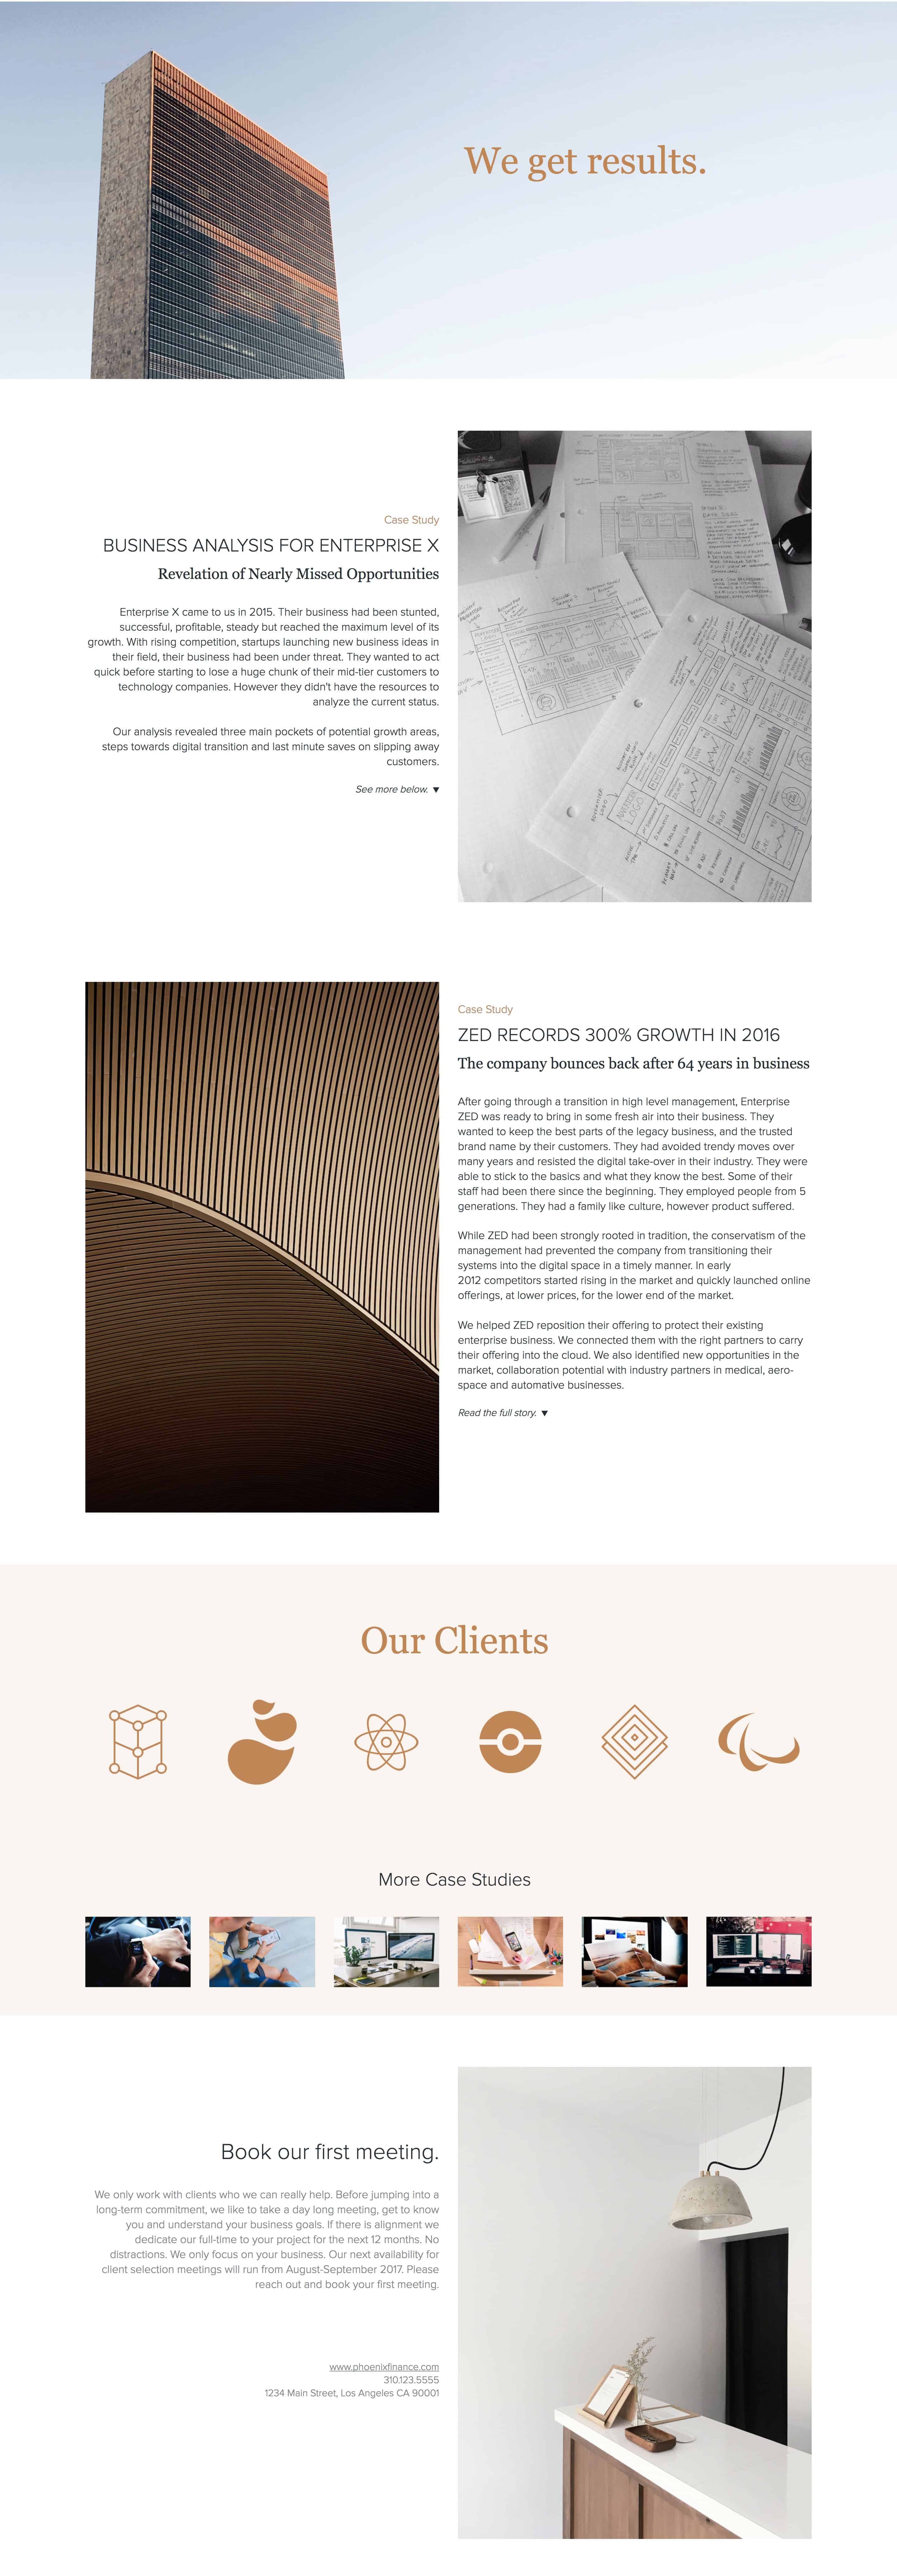 Consulting Services Proposal by Xtensio Its free – Proposal Layouts